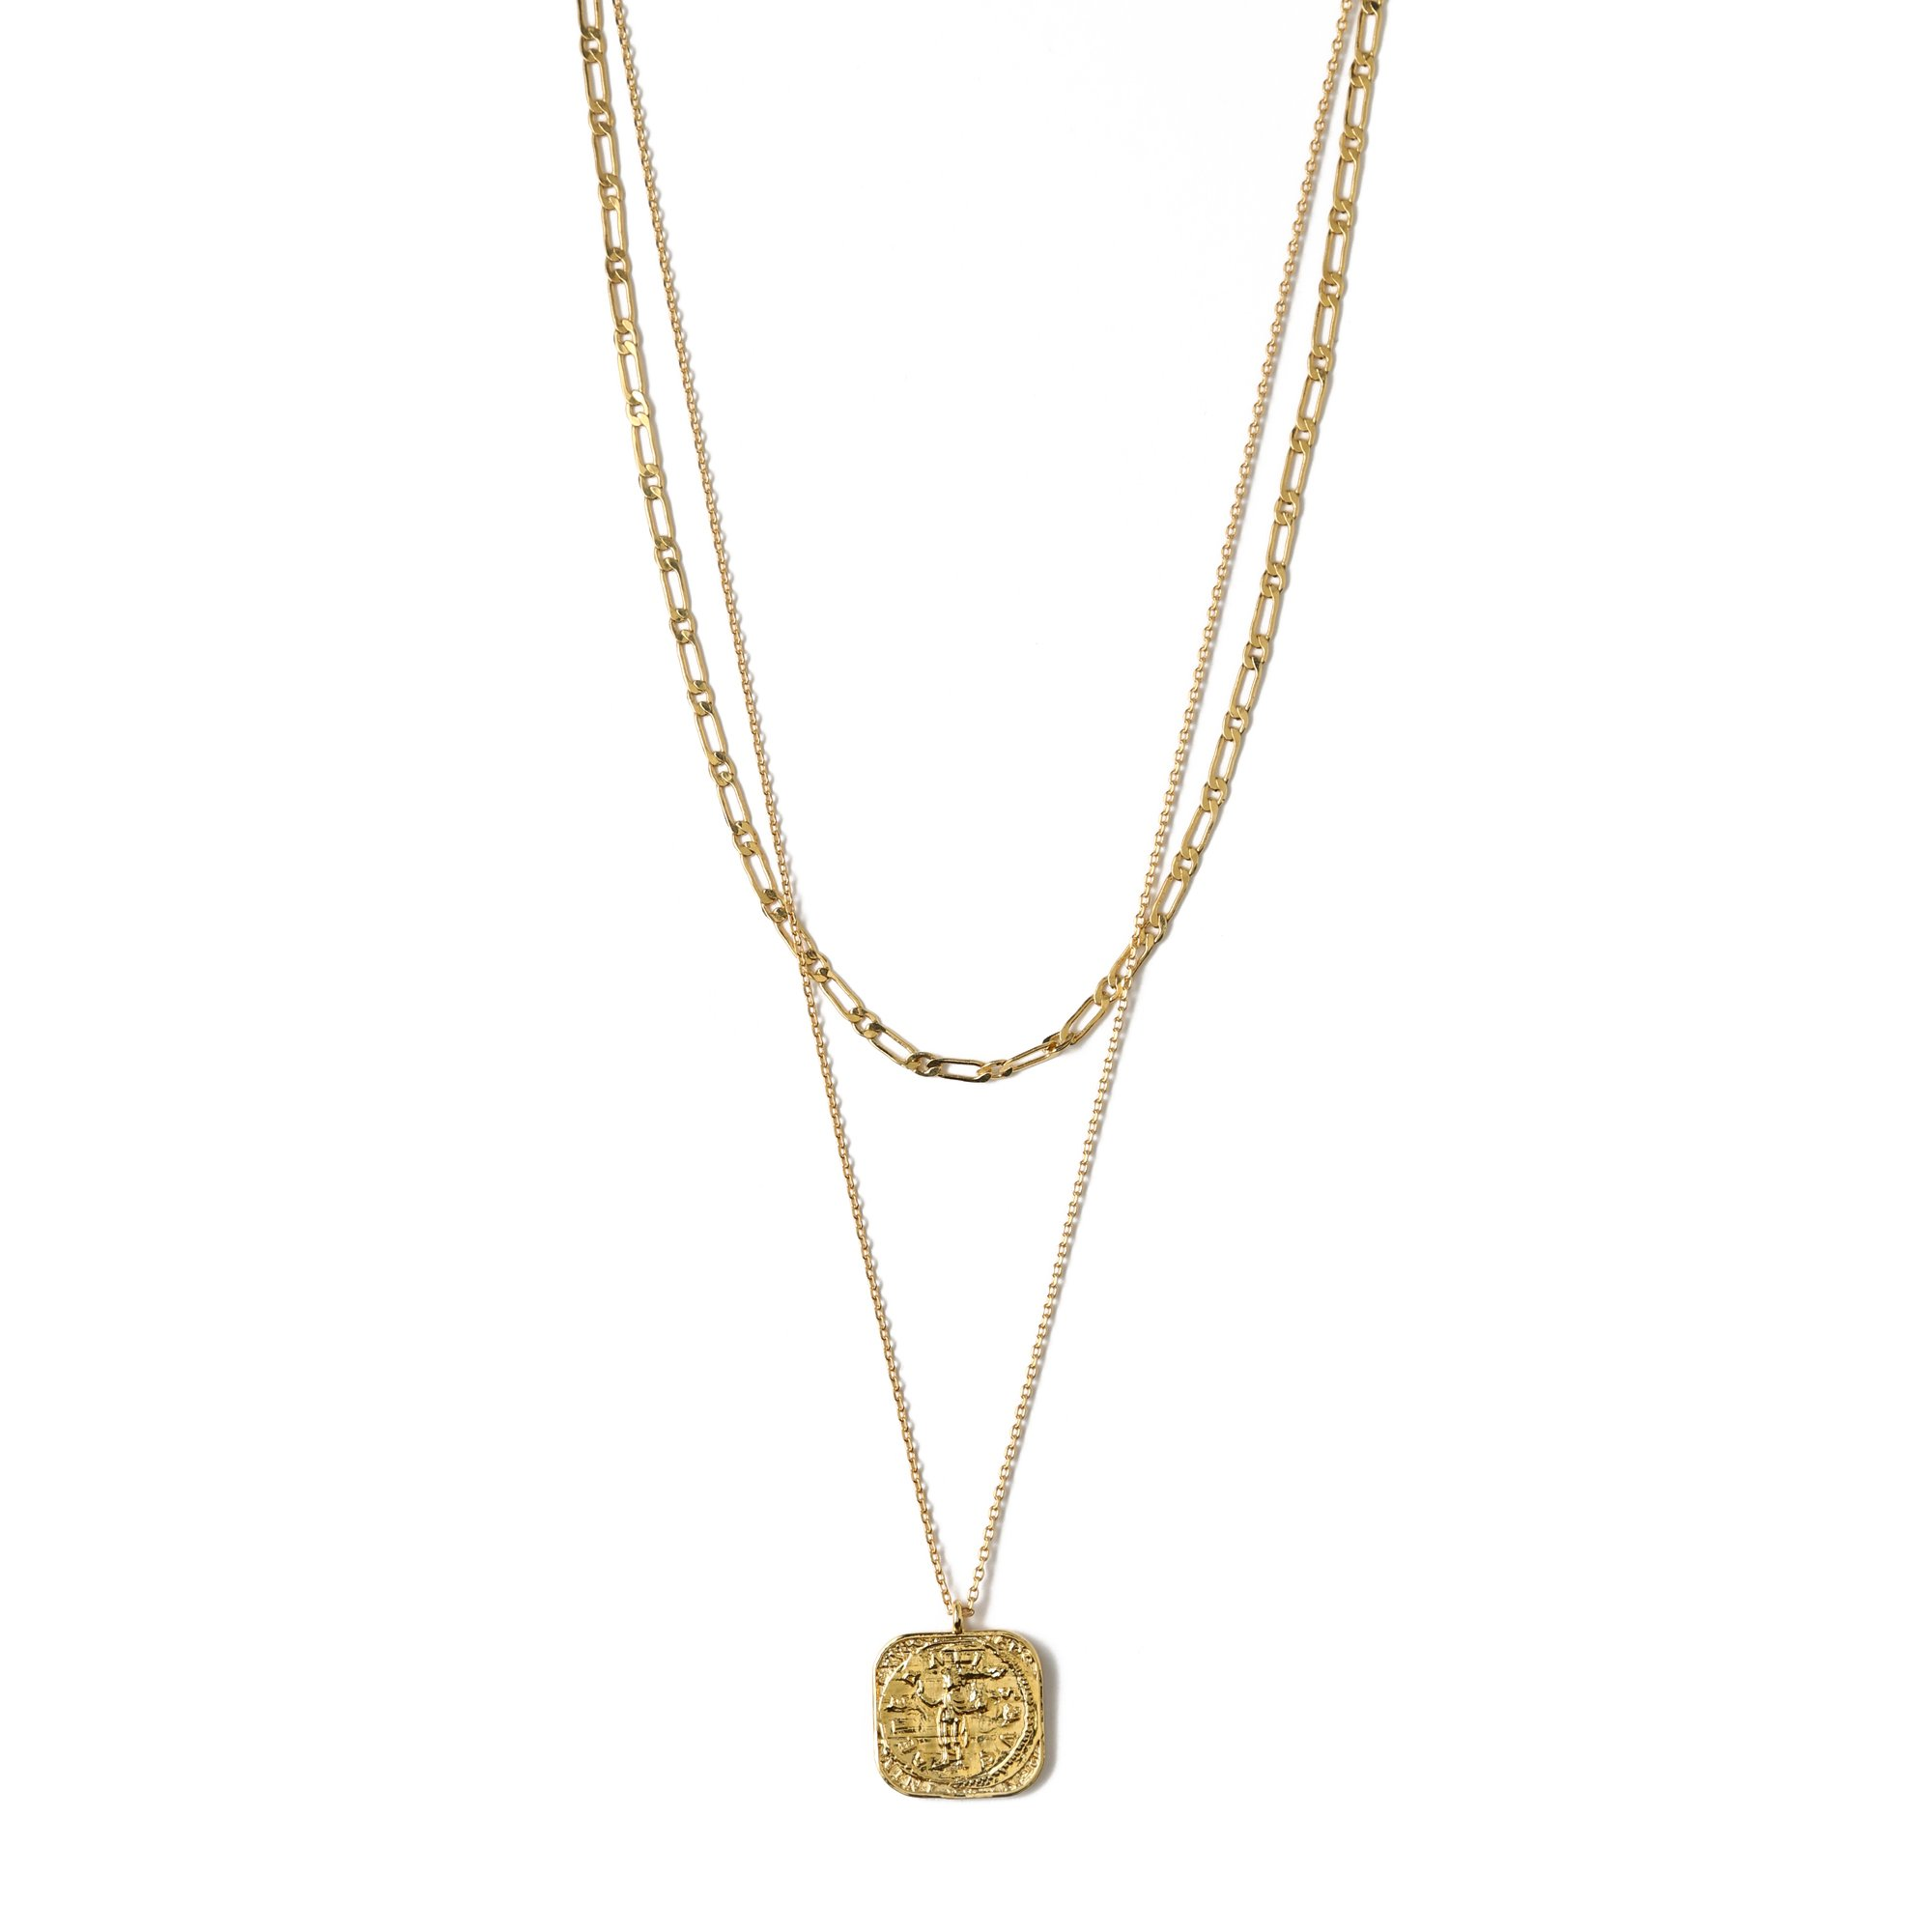 Square Coin Chain 2 Row Necklace